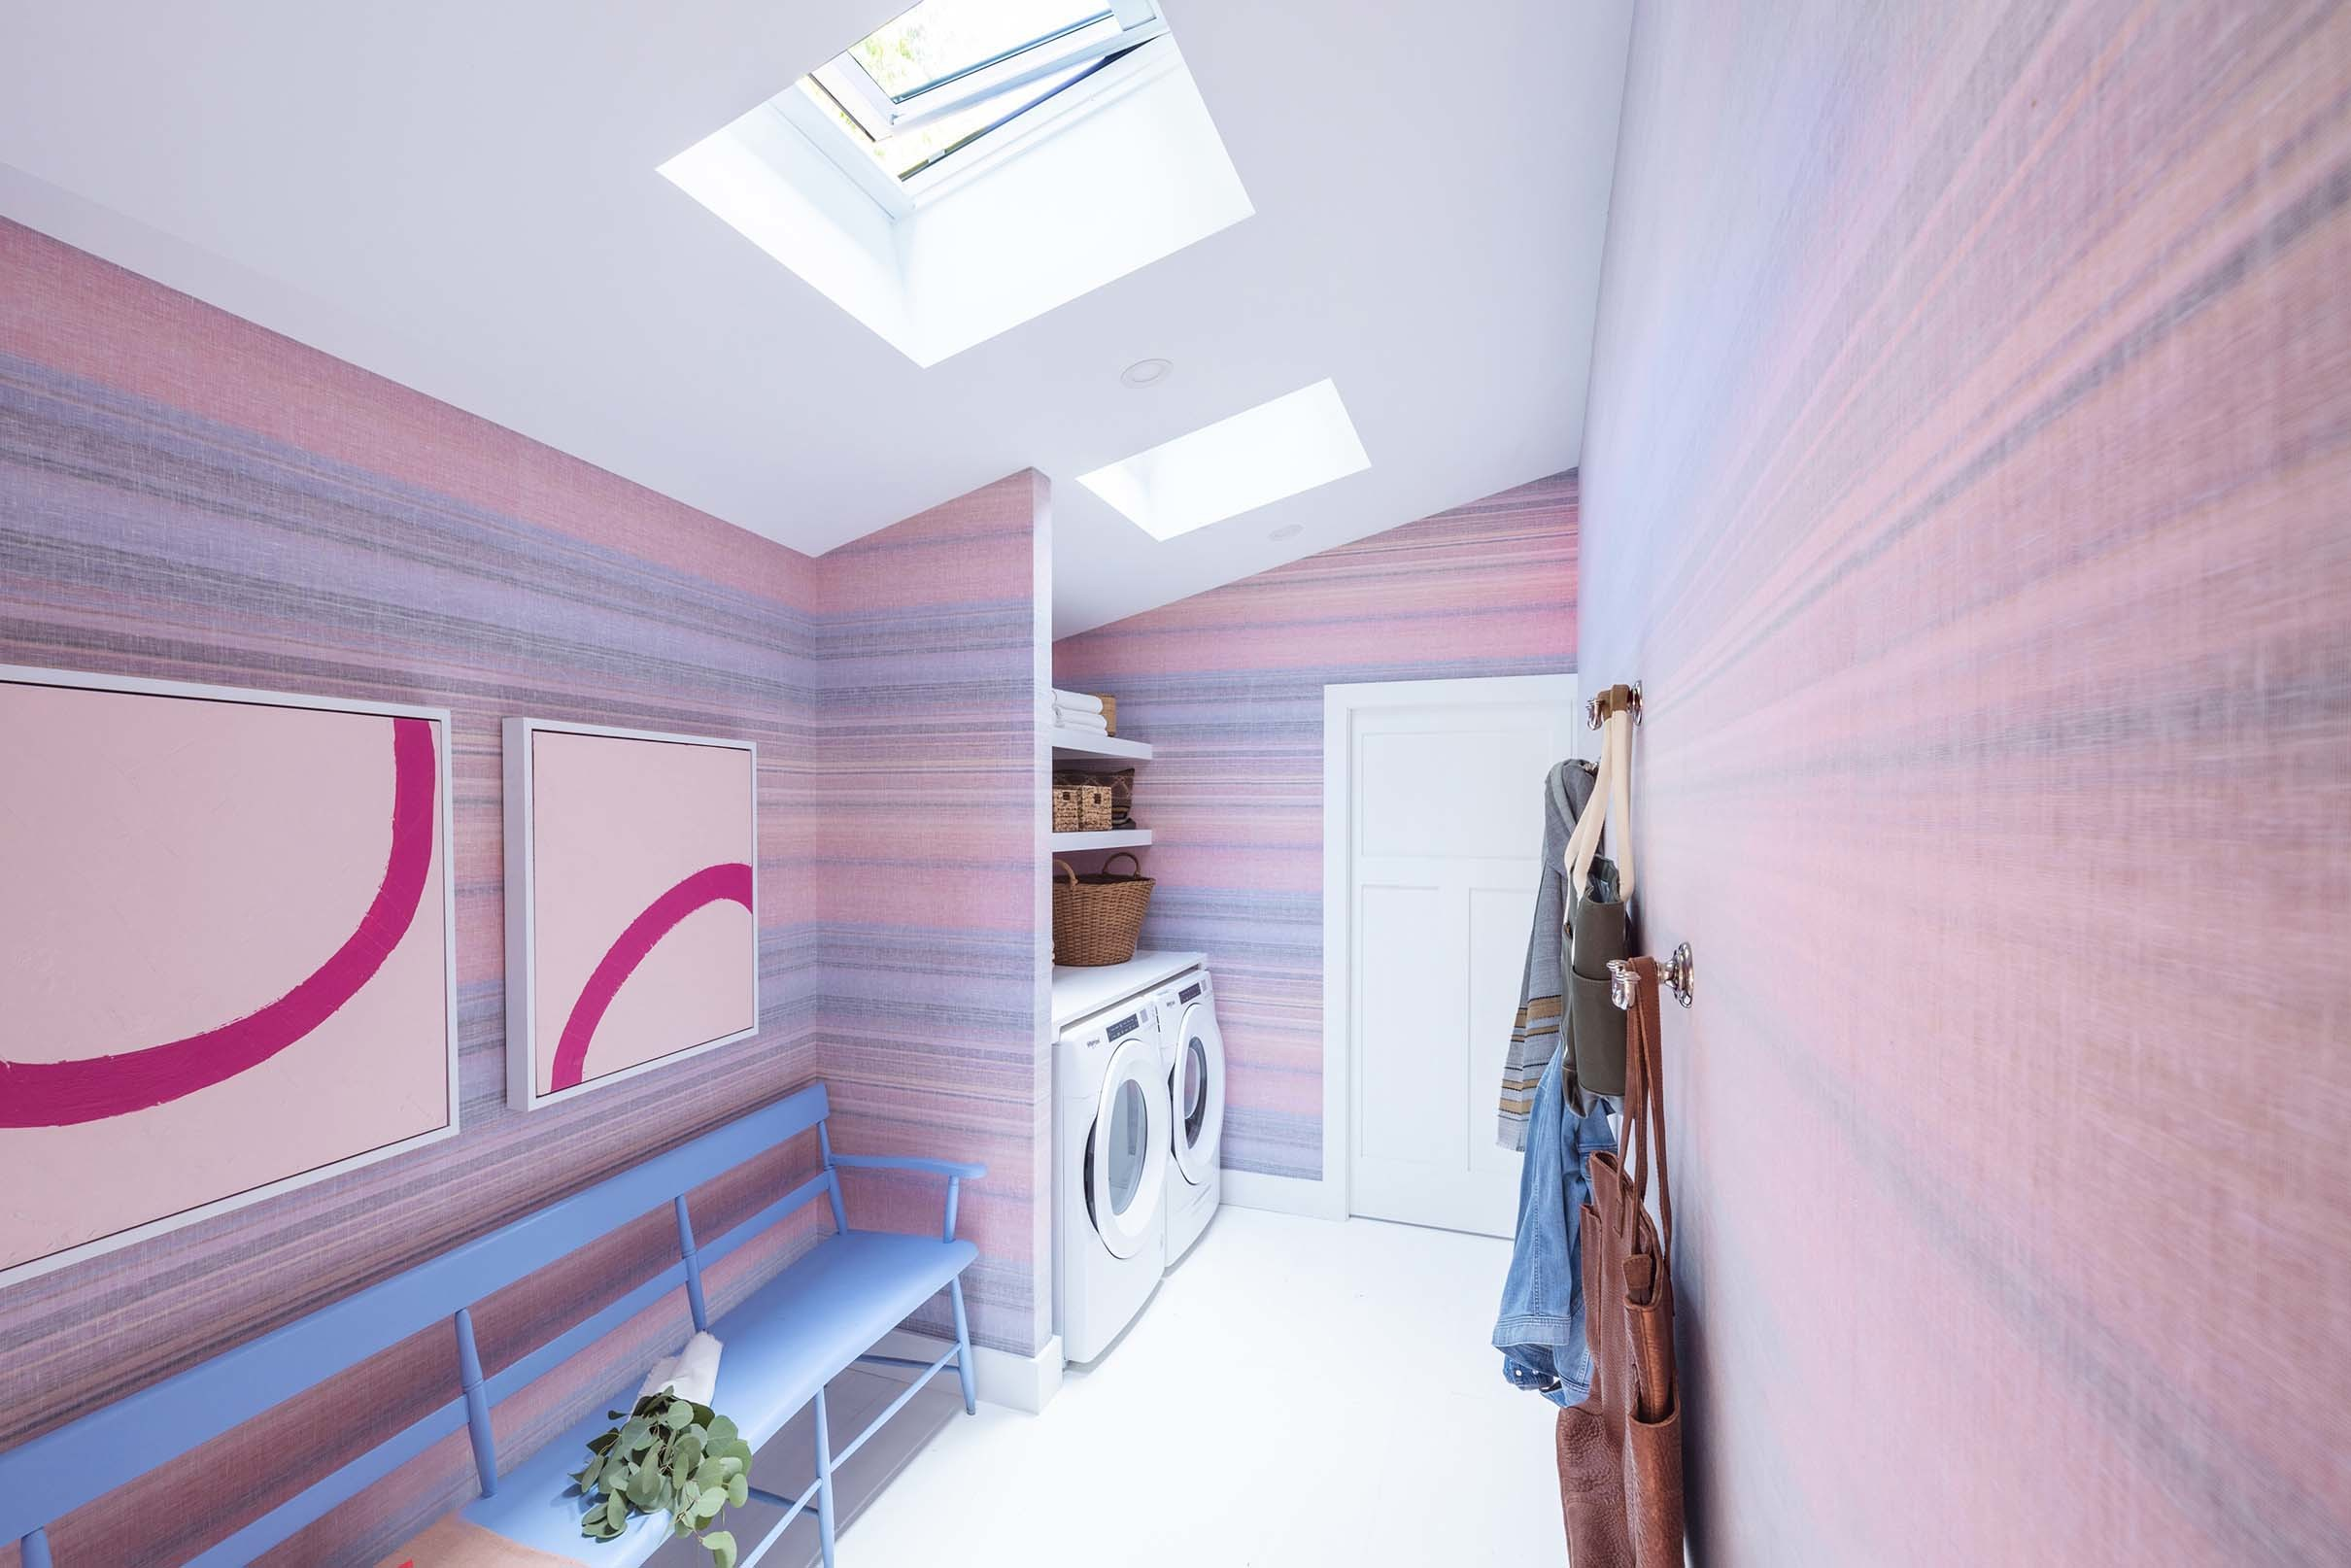 Laundry room skylights pink purple wallpaper small